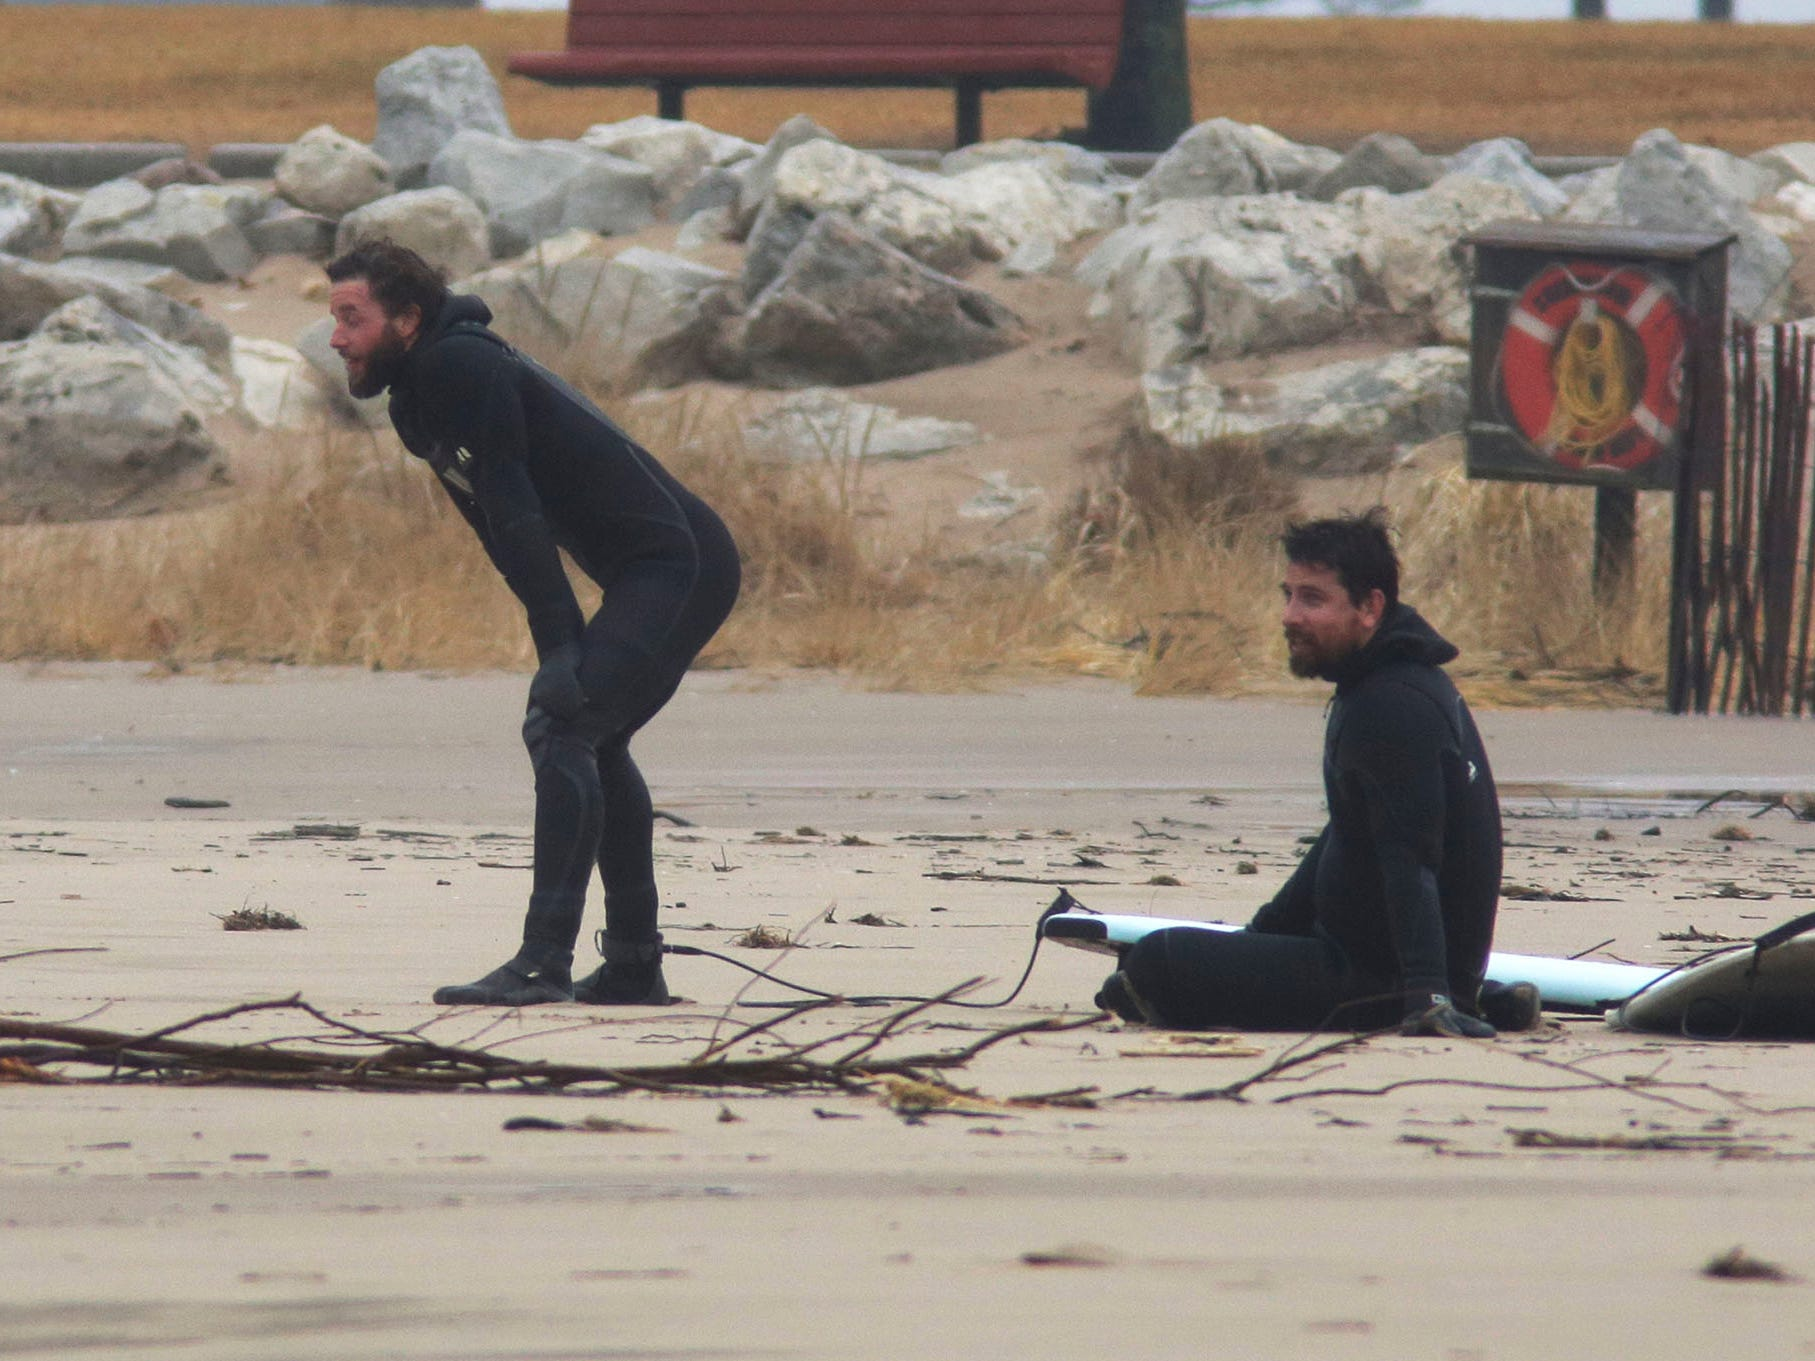 Surfers take a breather between waves at Deland Park, Monday, January 7, 2019, in Sheboygan, Wis. Westerly winds of 15-25 knots were expected to be in the 3 to 8 foot range with possibilities as high as 10 feet.